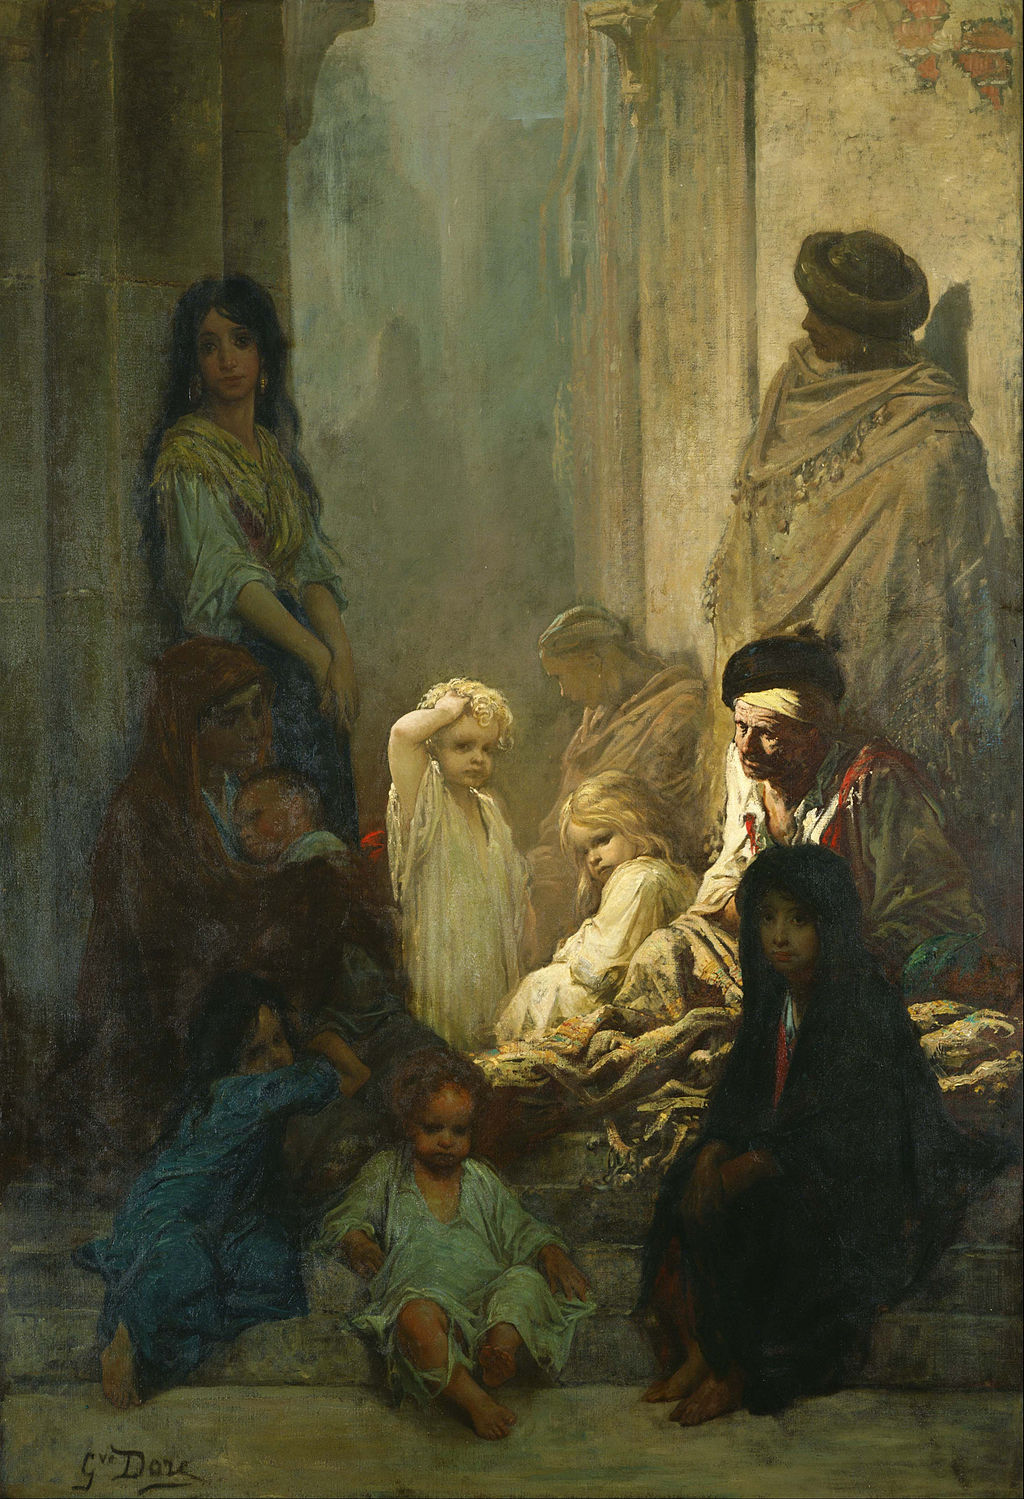 Gustave Dore - La Siesta, Memory of Spain - Google Art Project